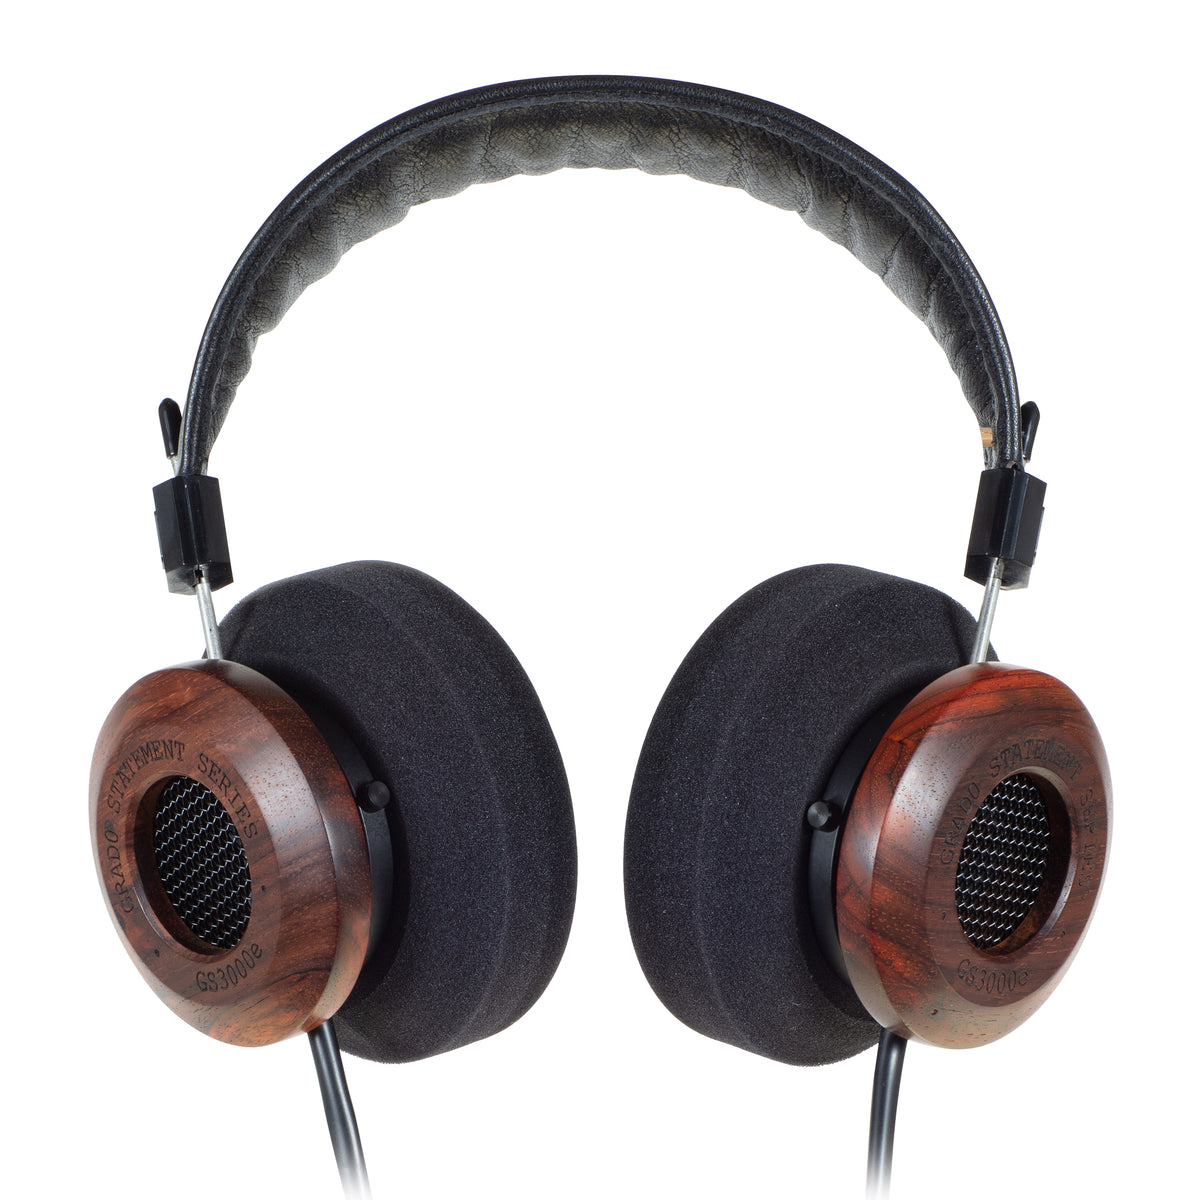 Grado: GS3000e Cocobolo-Maple Hybrid Enclosure Headphones